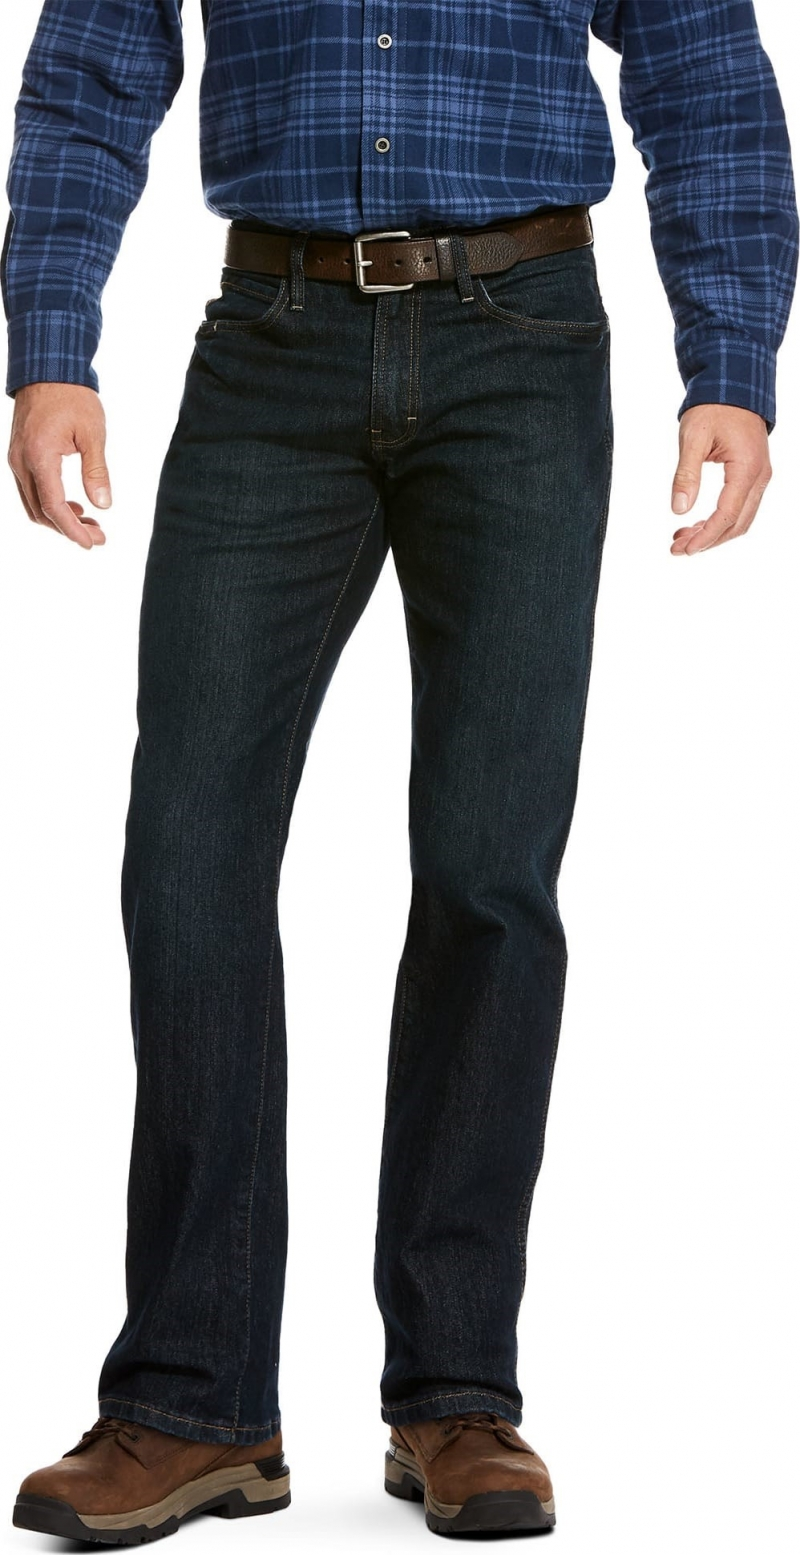 Ariat Rebar M2 DuratStretch Relaxed Fit Stackable Straight Leg - Blackstone